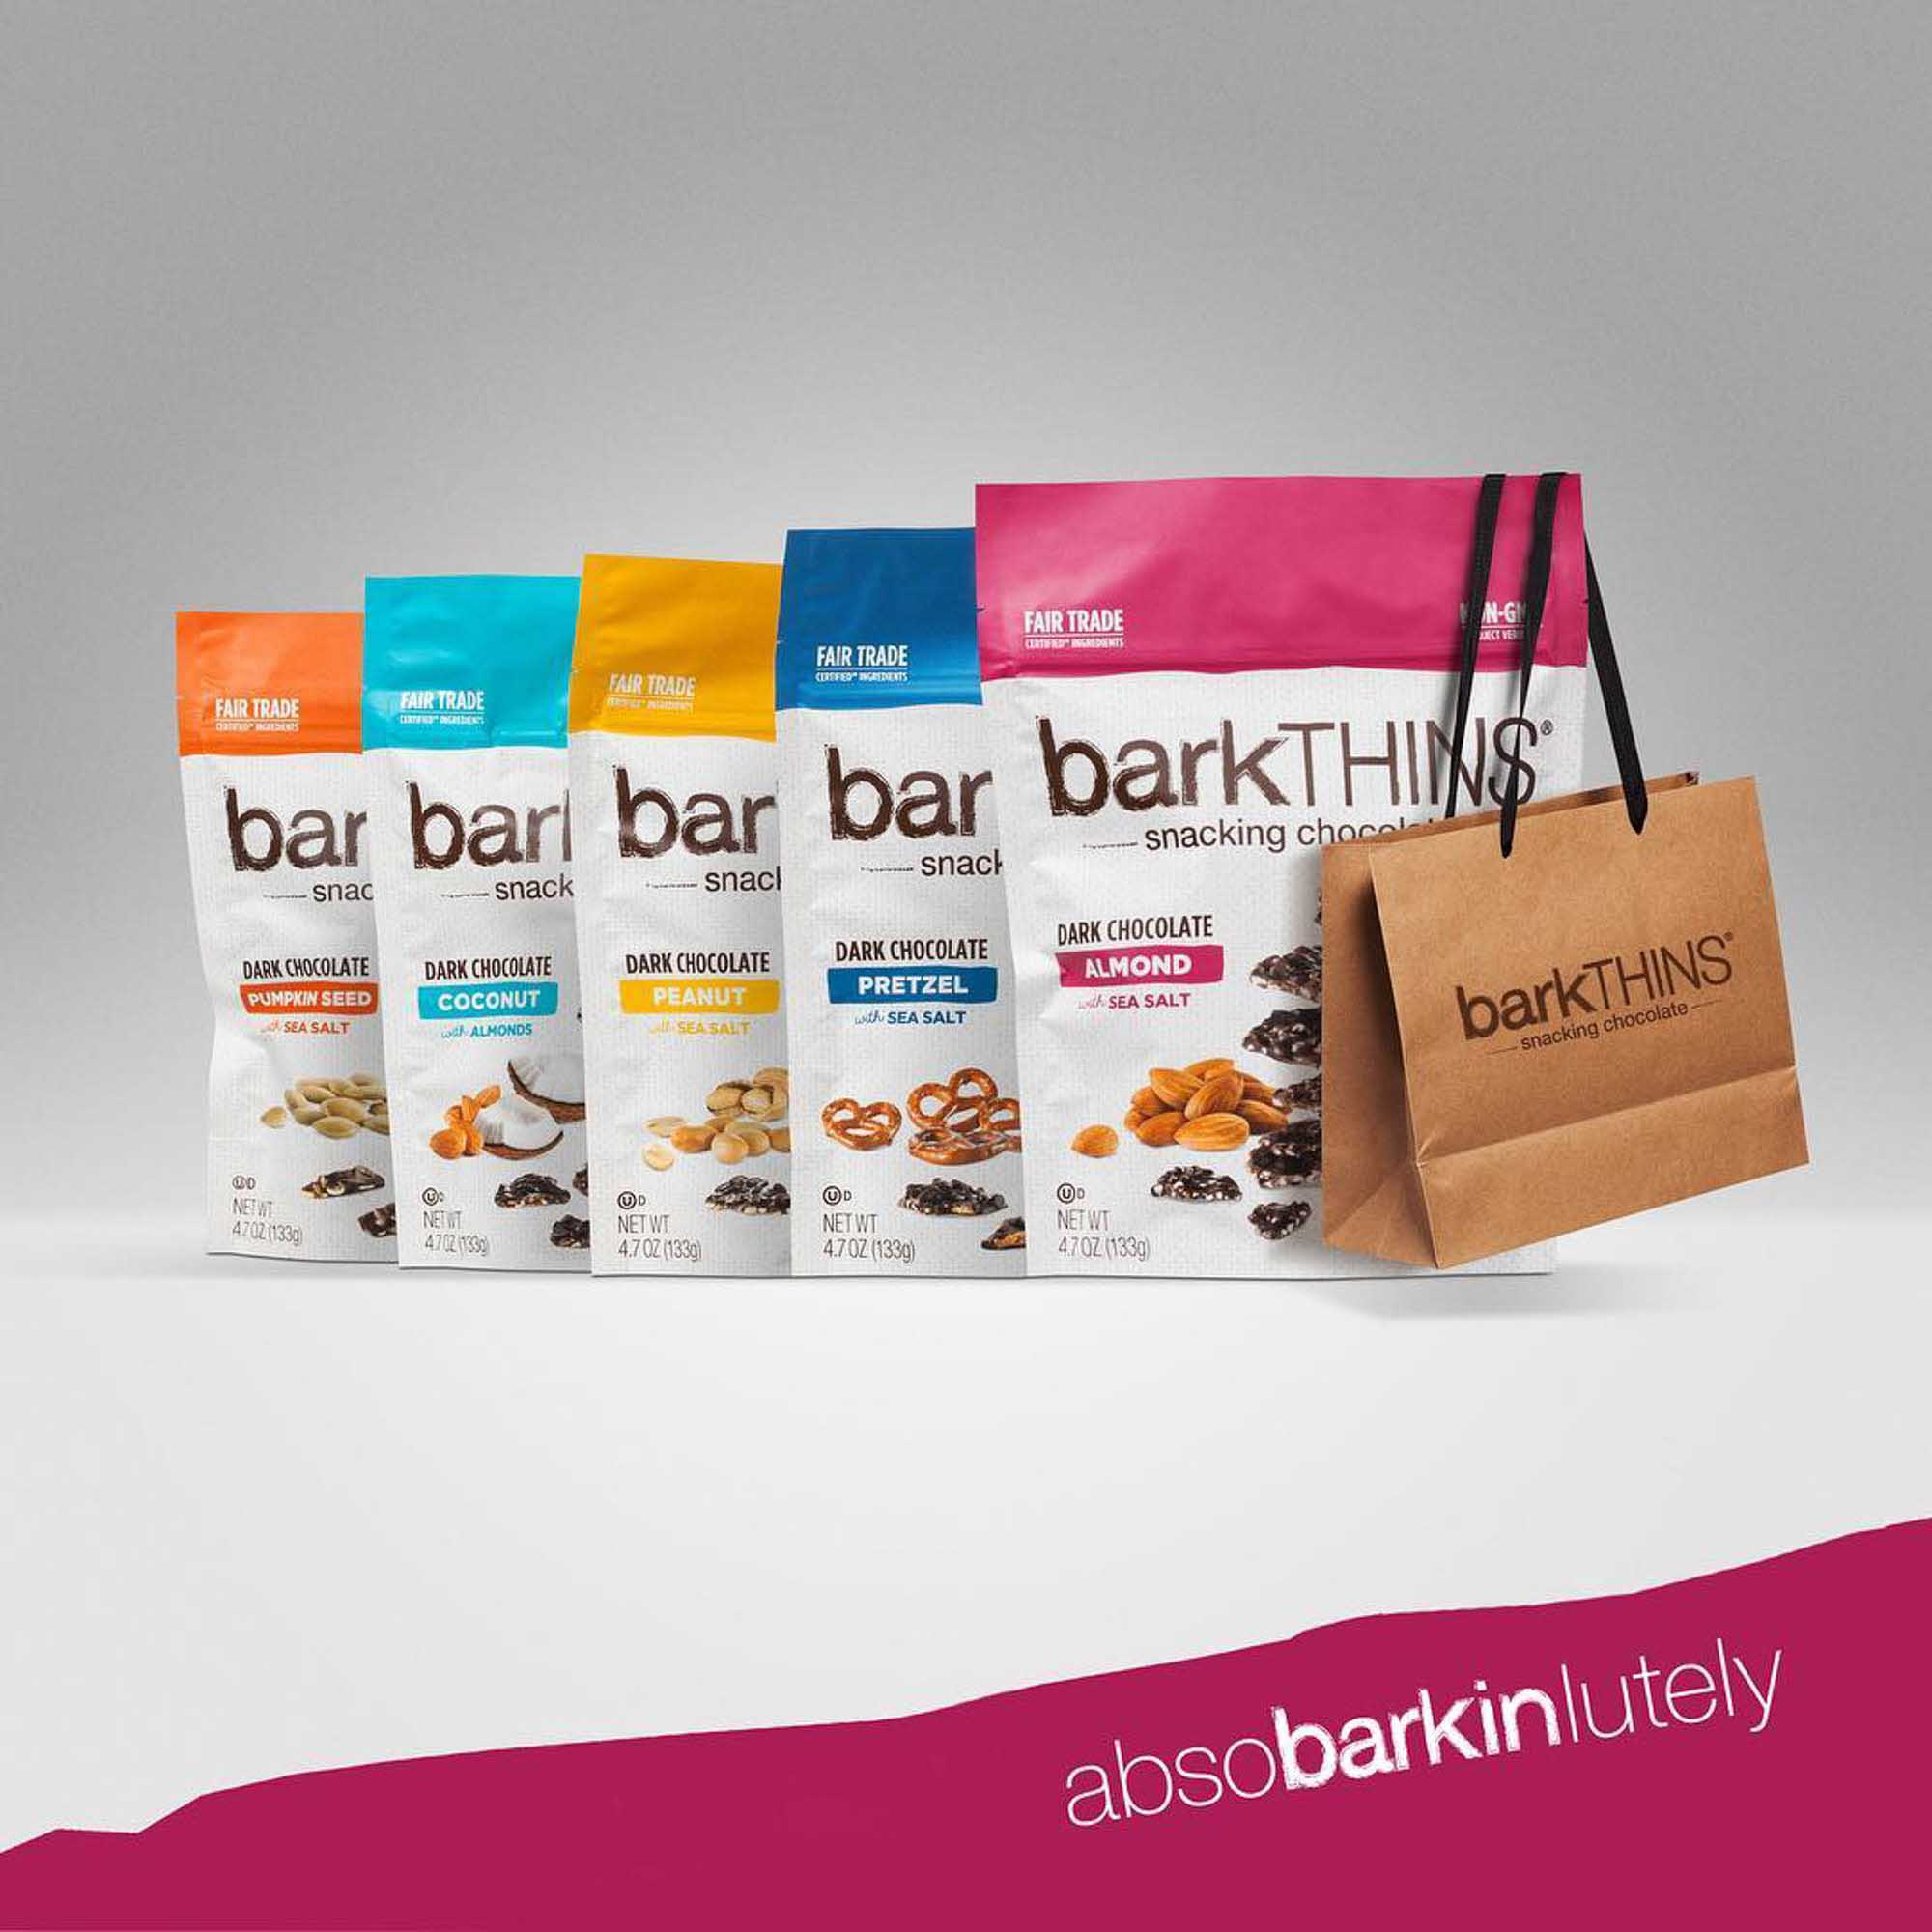 Five Bags of Barkthins Snacks, product photography | Still Life Photography | Shot in Boulder, Colorado for Crispin Porter + Bogusky